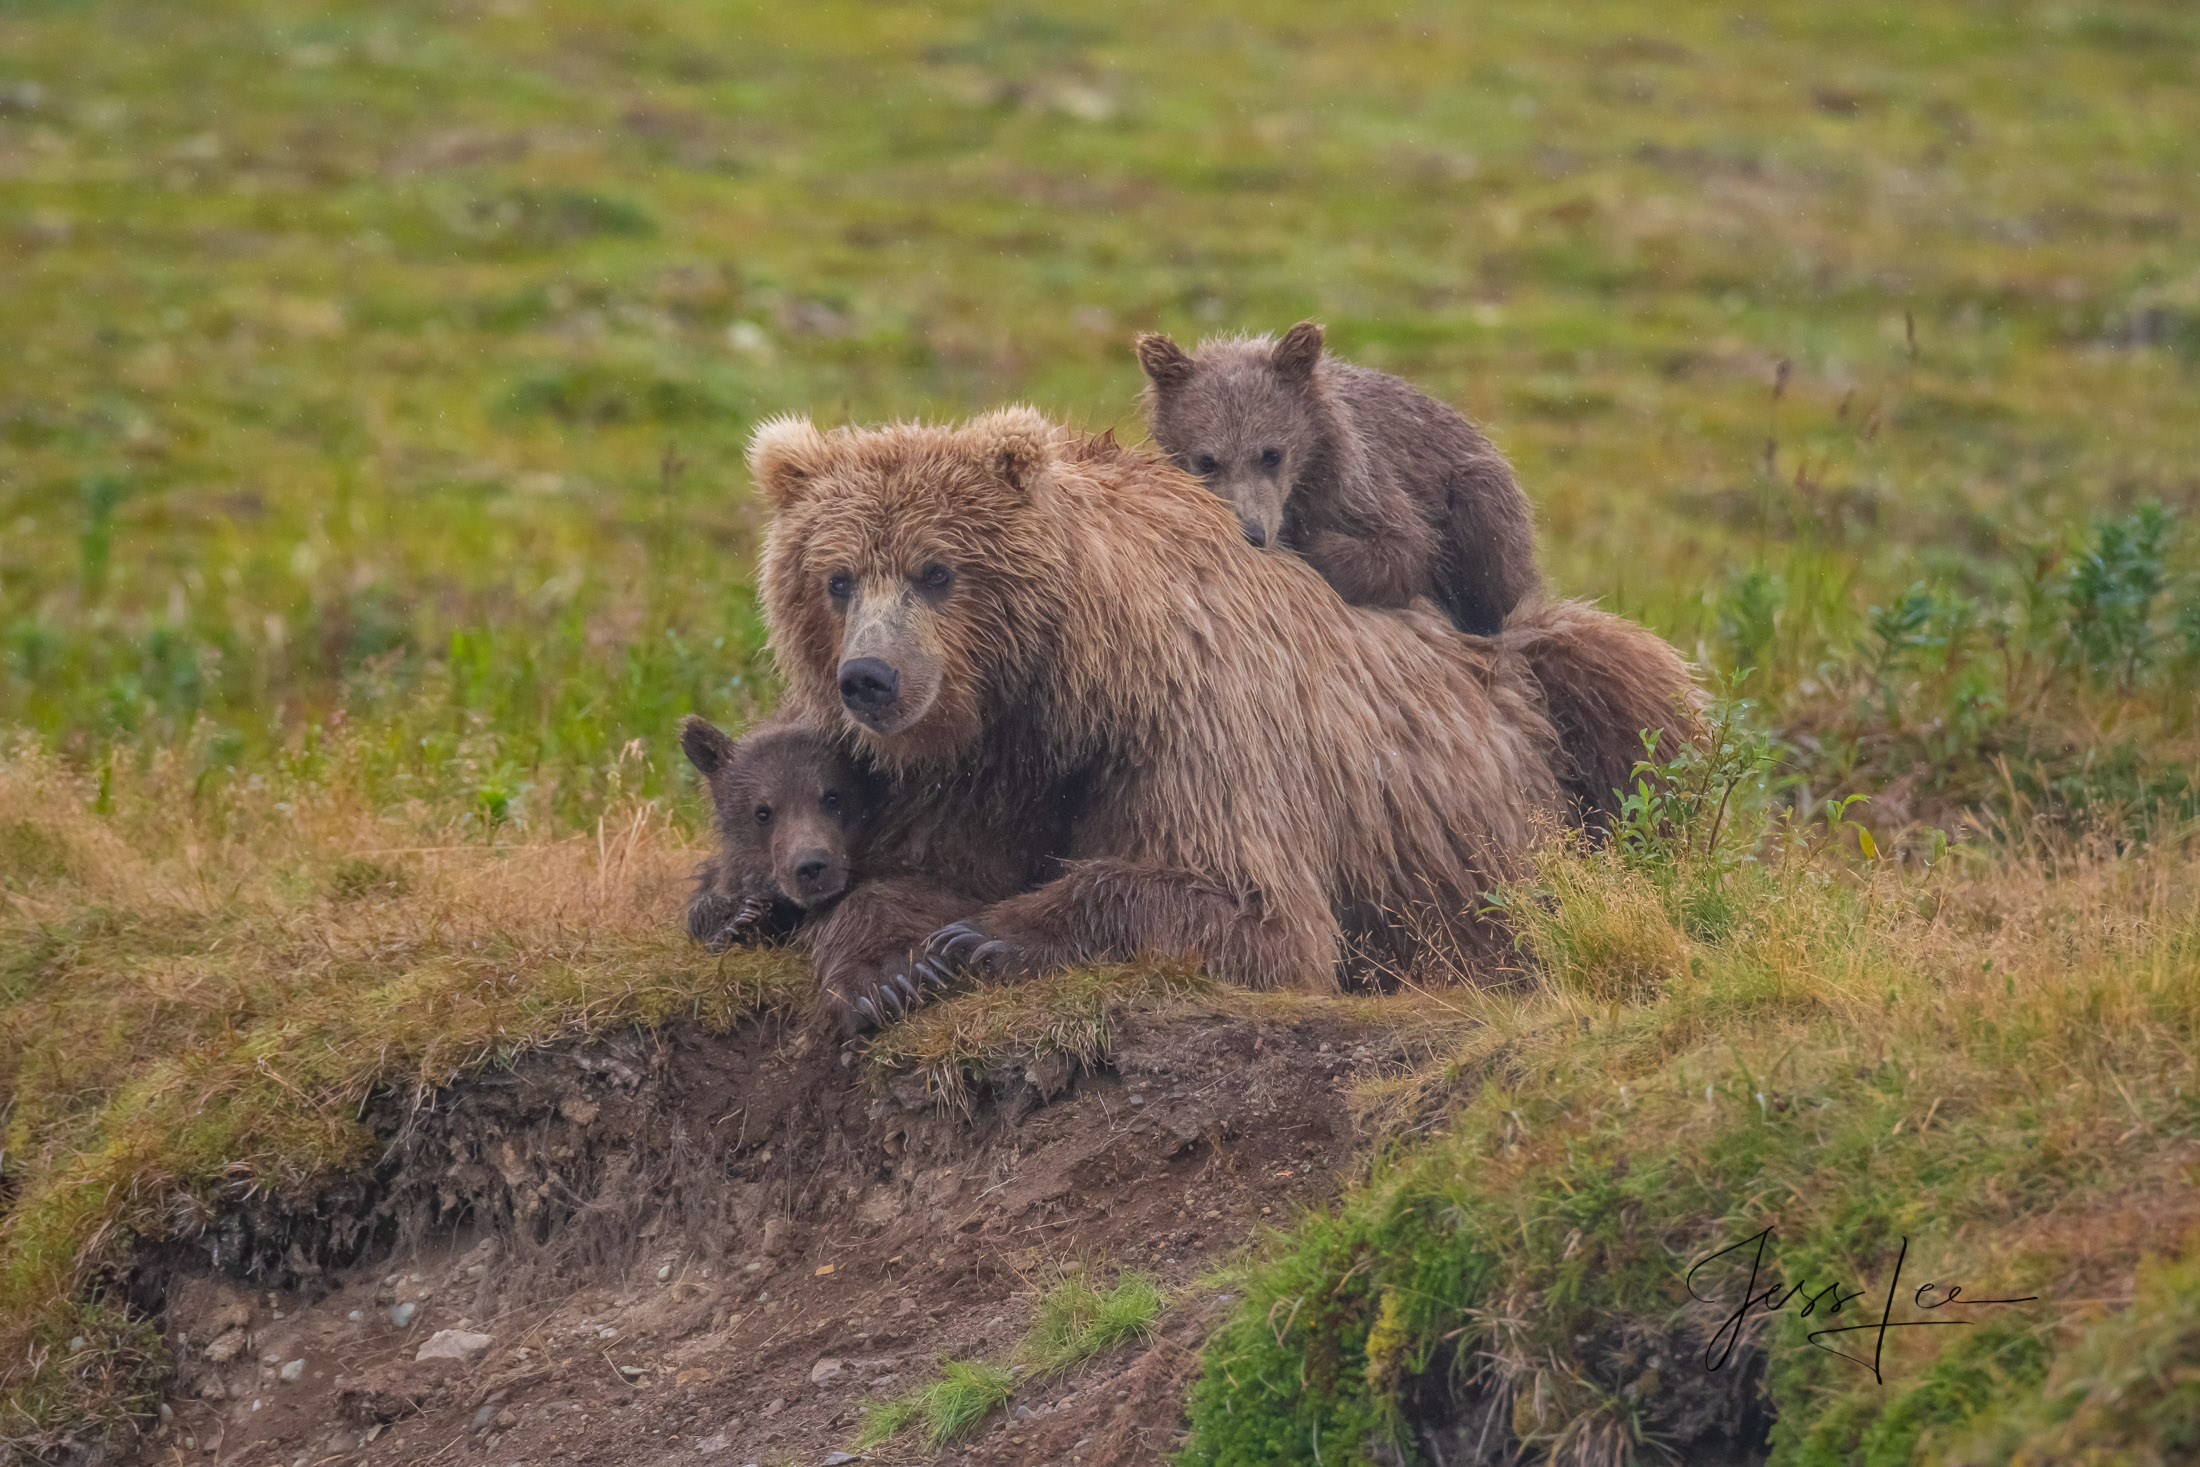 A Limited Edition picture of a mother Grizzly bear with cubs.